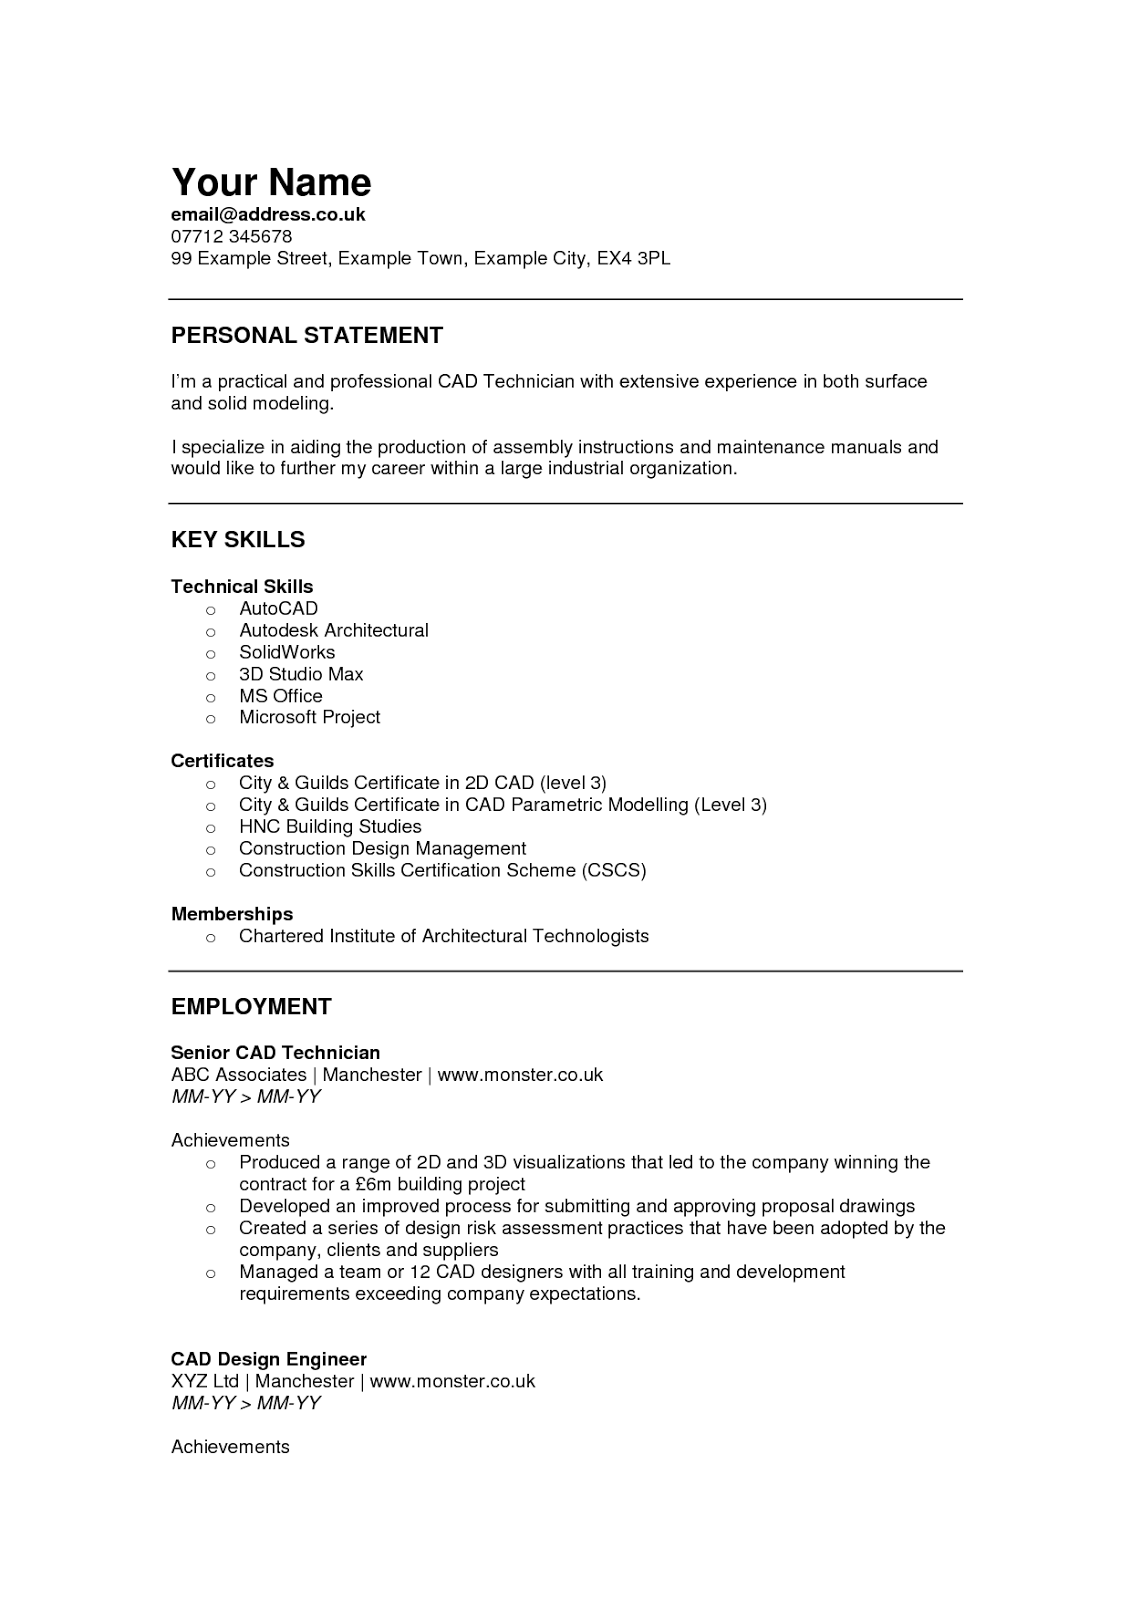 Resume CV Cover Letter  resumes examples       best resume example     job application cover letter monster career advice tips for job interviews  monster